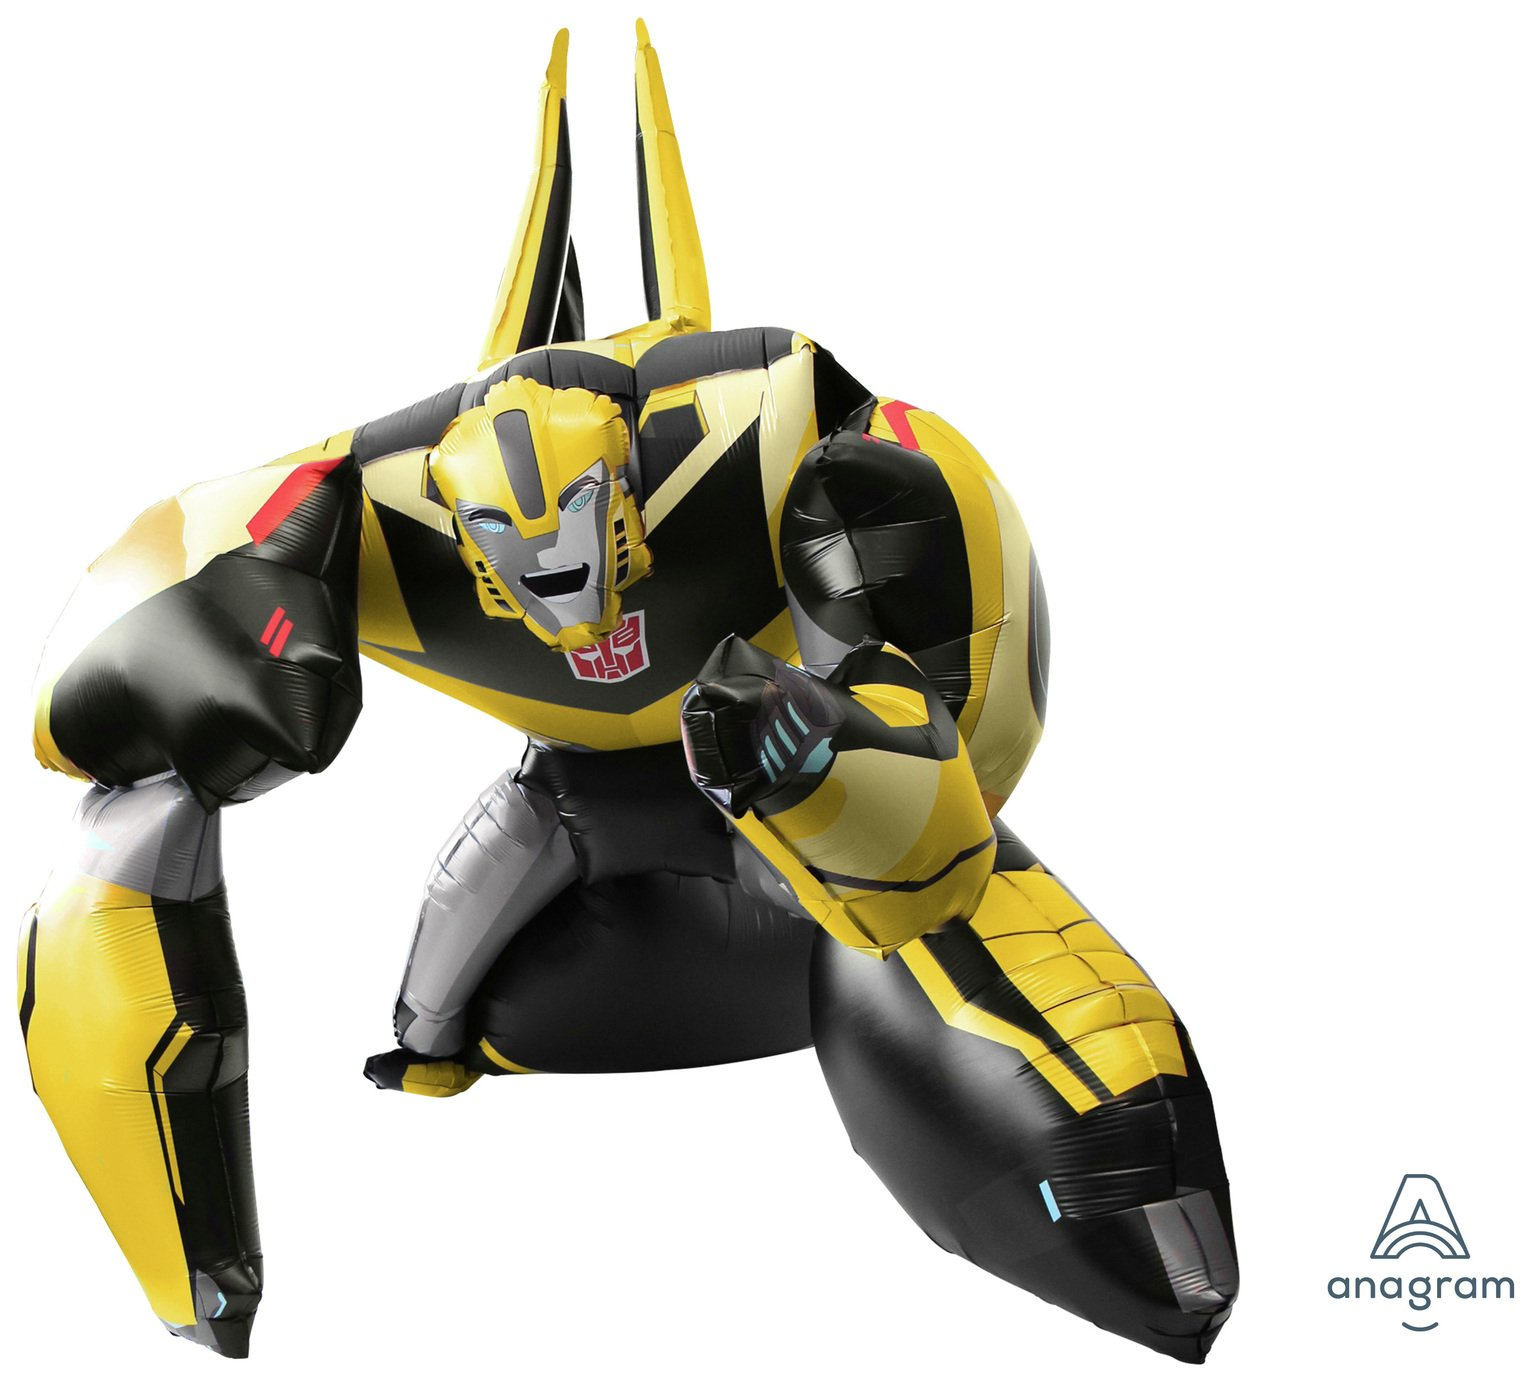 Image of Hasbro Transformers Bumblebee Airwalker